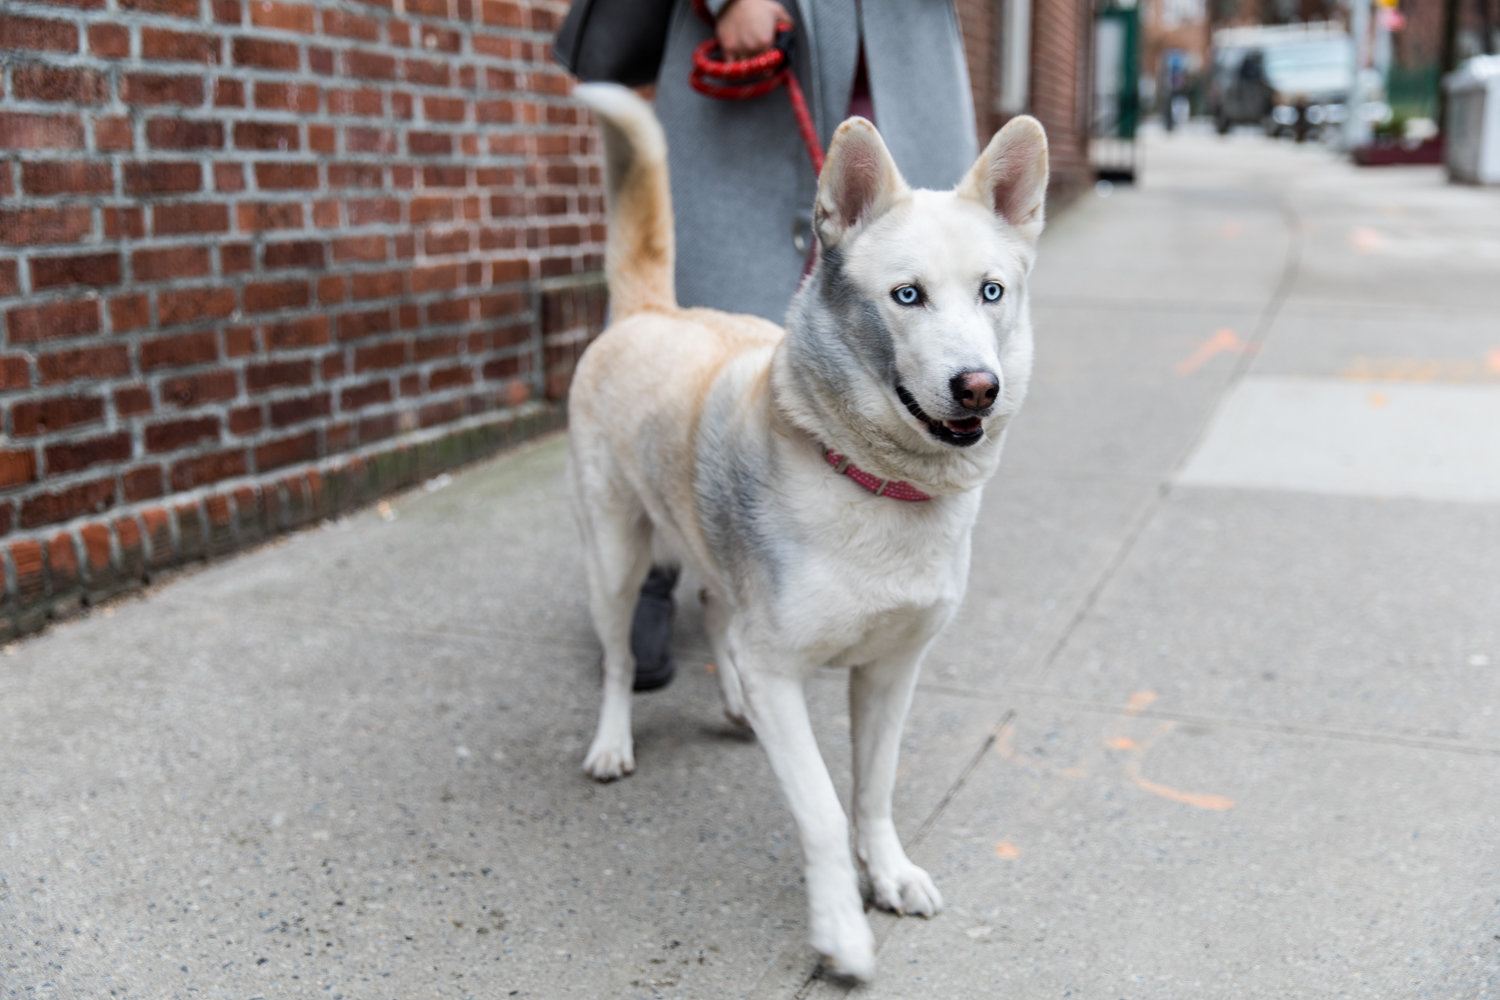 Stella, a 5-year-old husky, was rescued from 215 W. 242nd St., where a one-alarm fire broke out Friday morning.